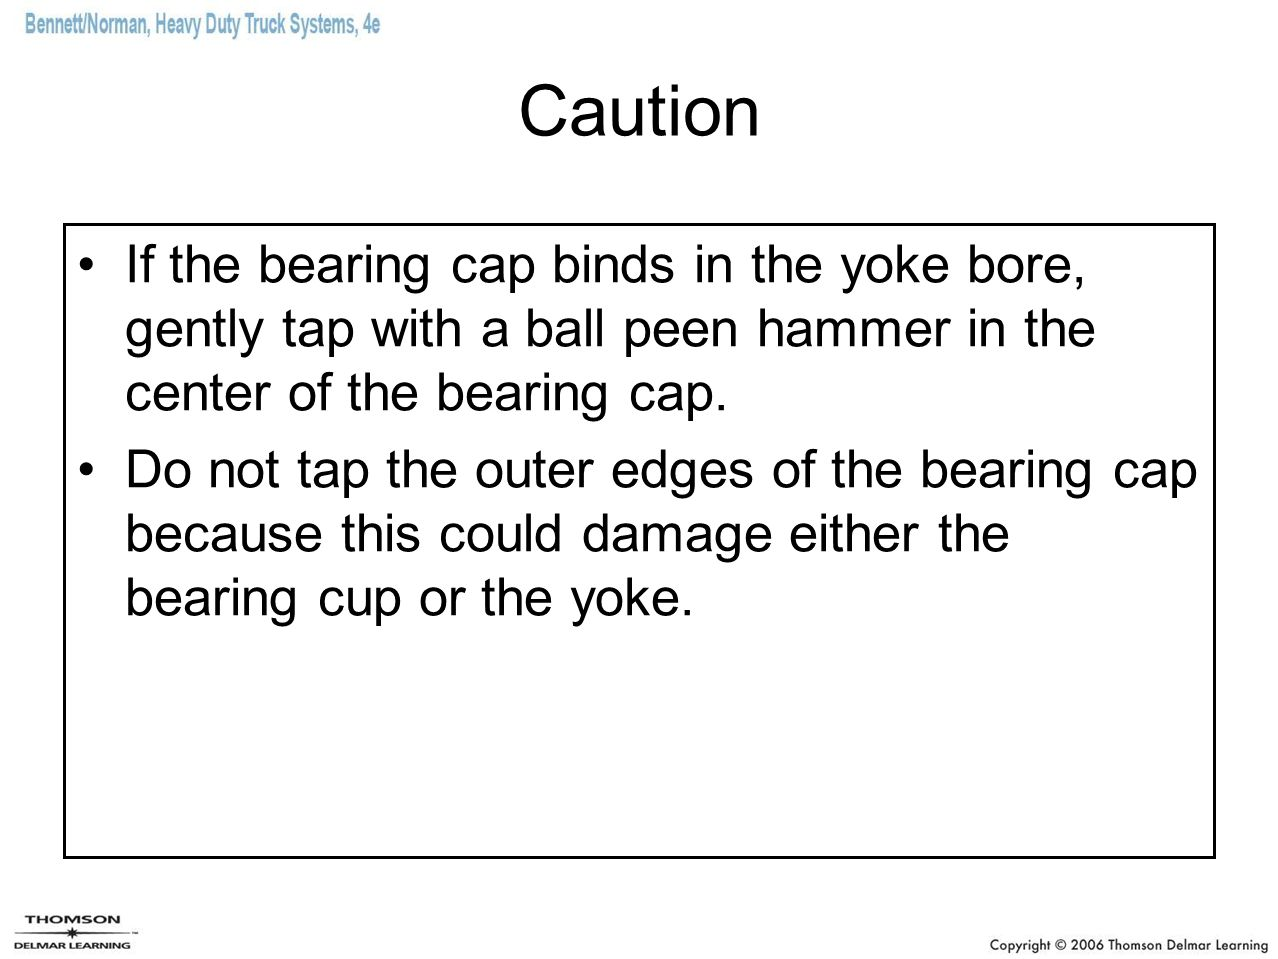 Caution If the bearing cap binds in the yoke bore, gently tap with a ball peen hammer in the center of the bearing cap.